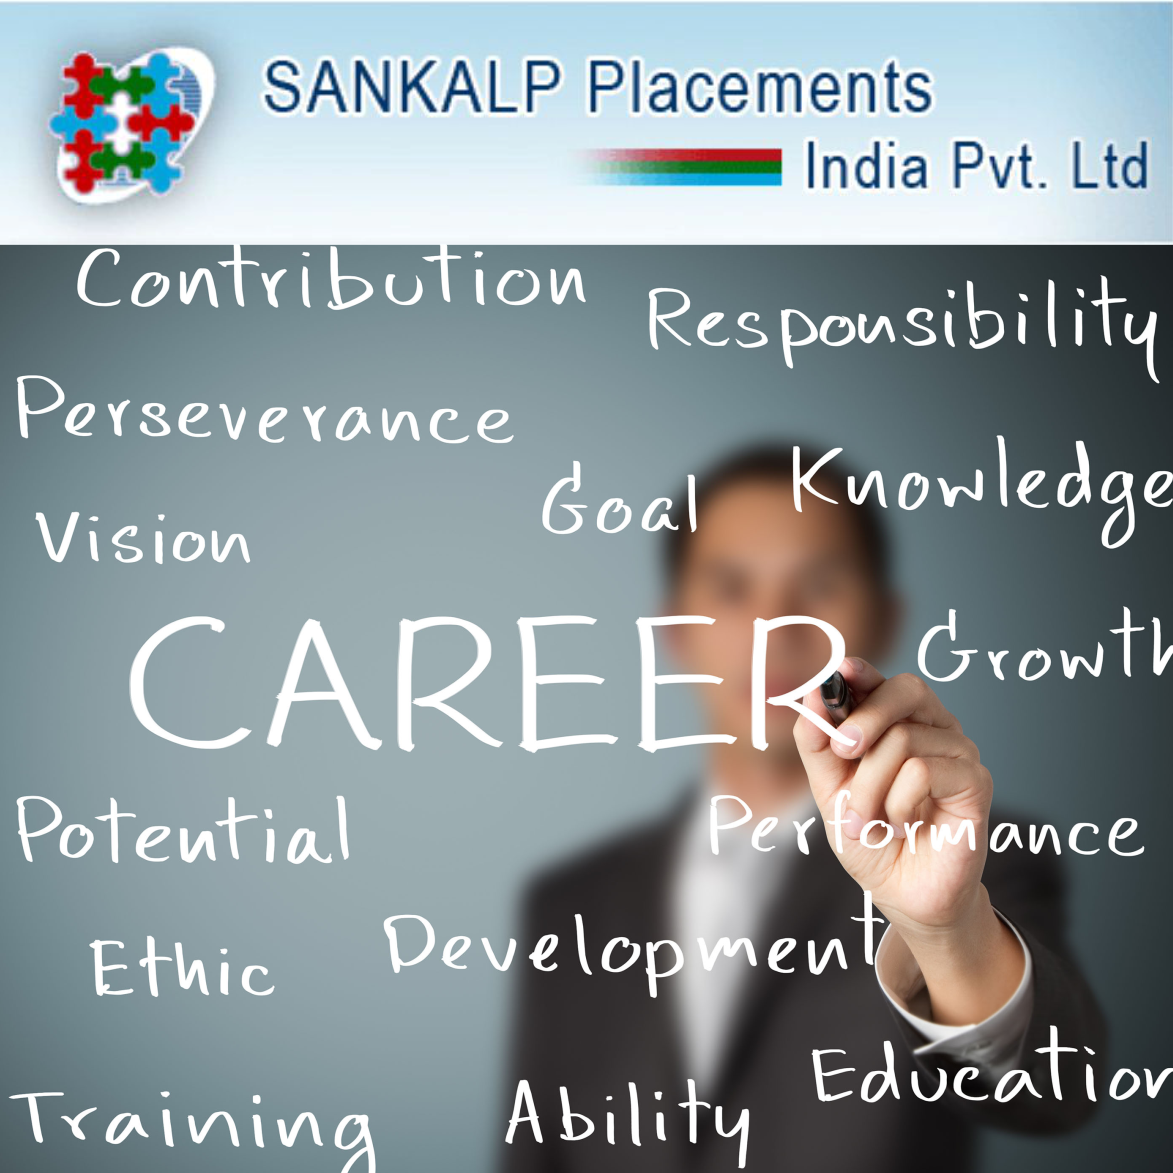 Sankalp is committed to creative teamwork.  #Sankalpplacements #Sankalp Visit- http://www.sankalpplacement.com/